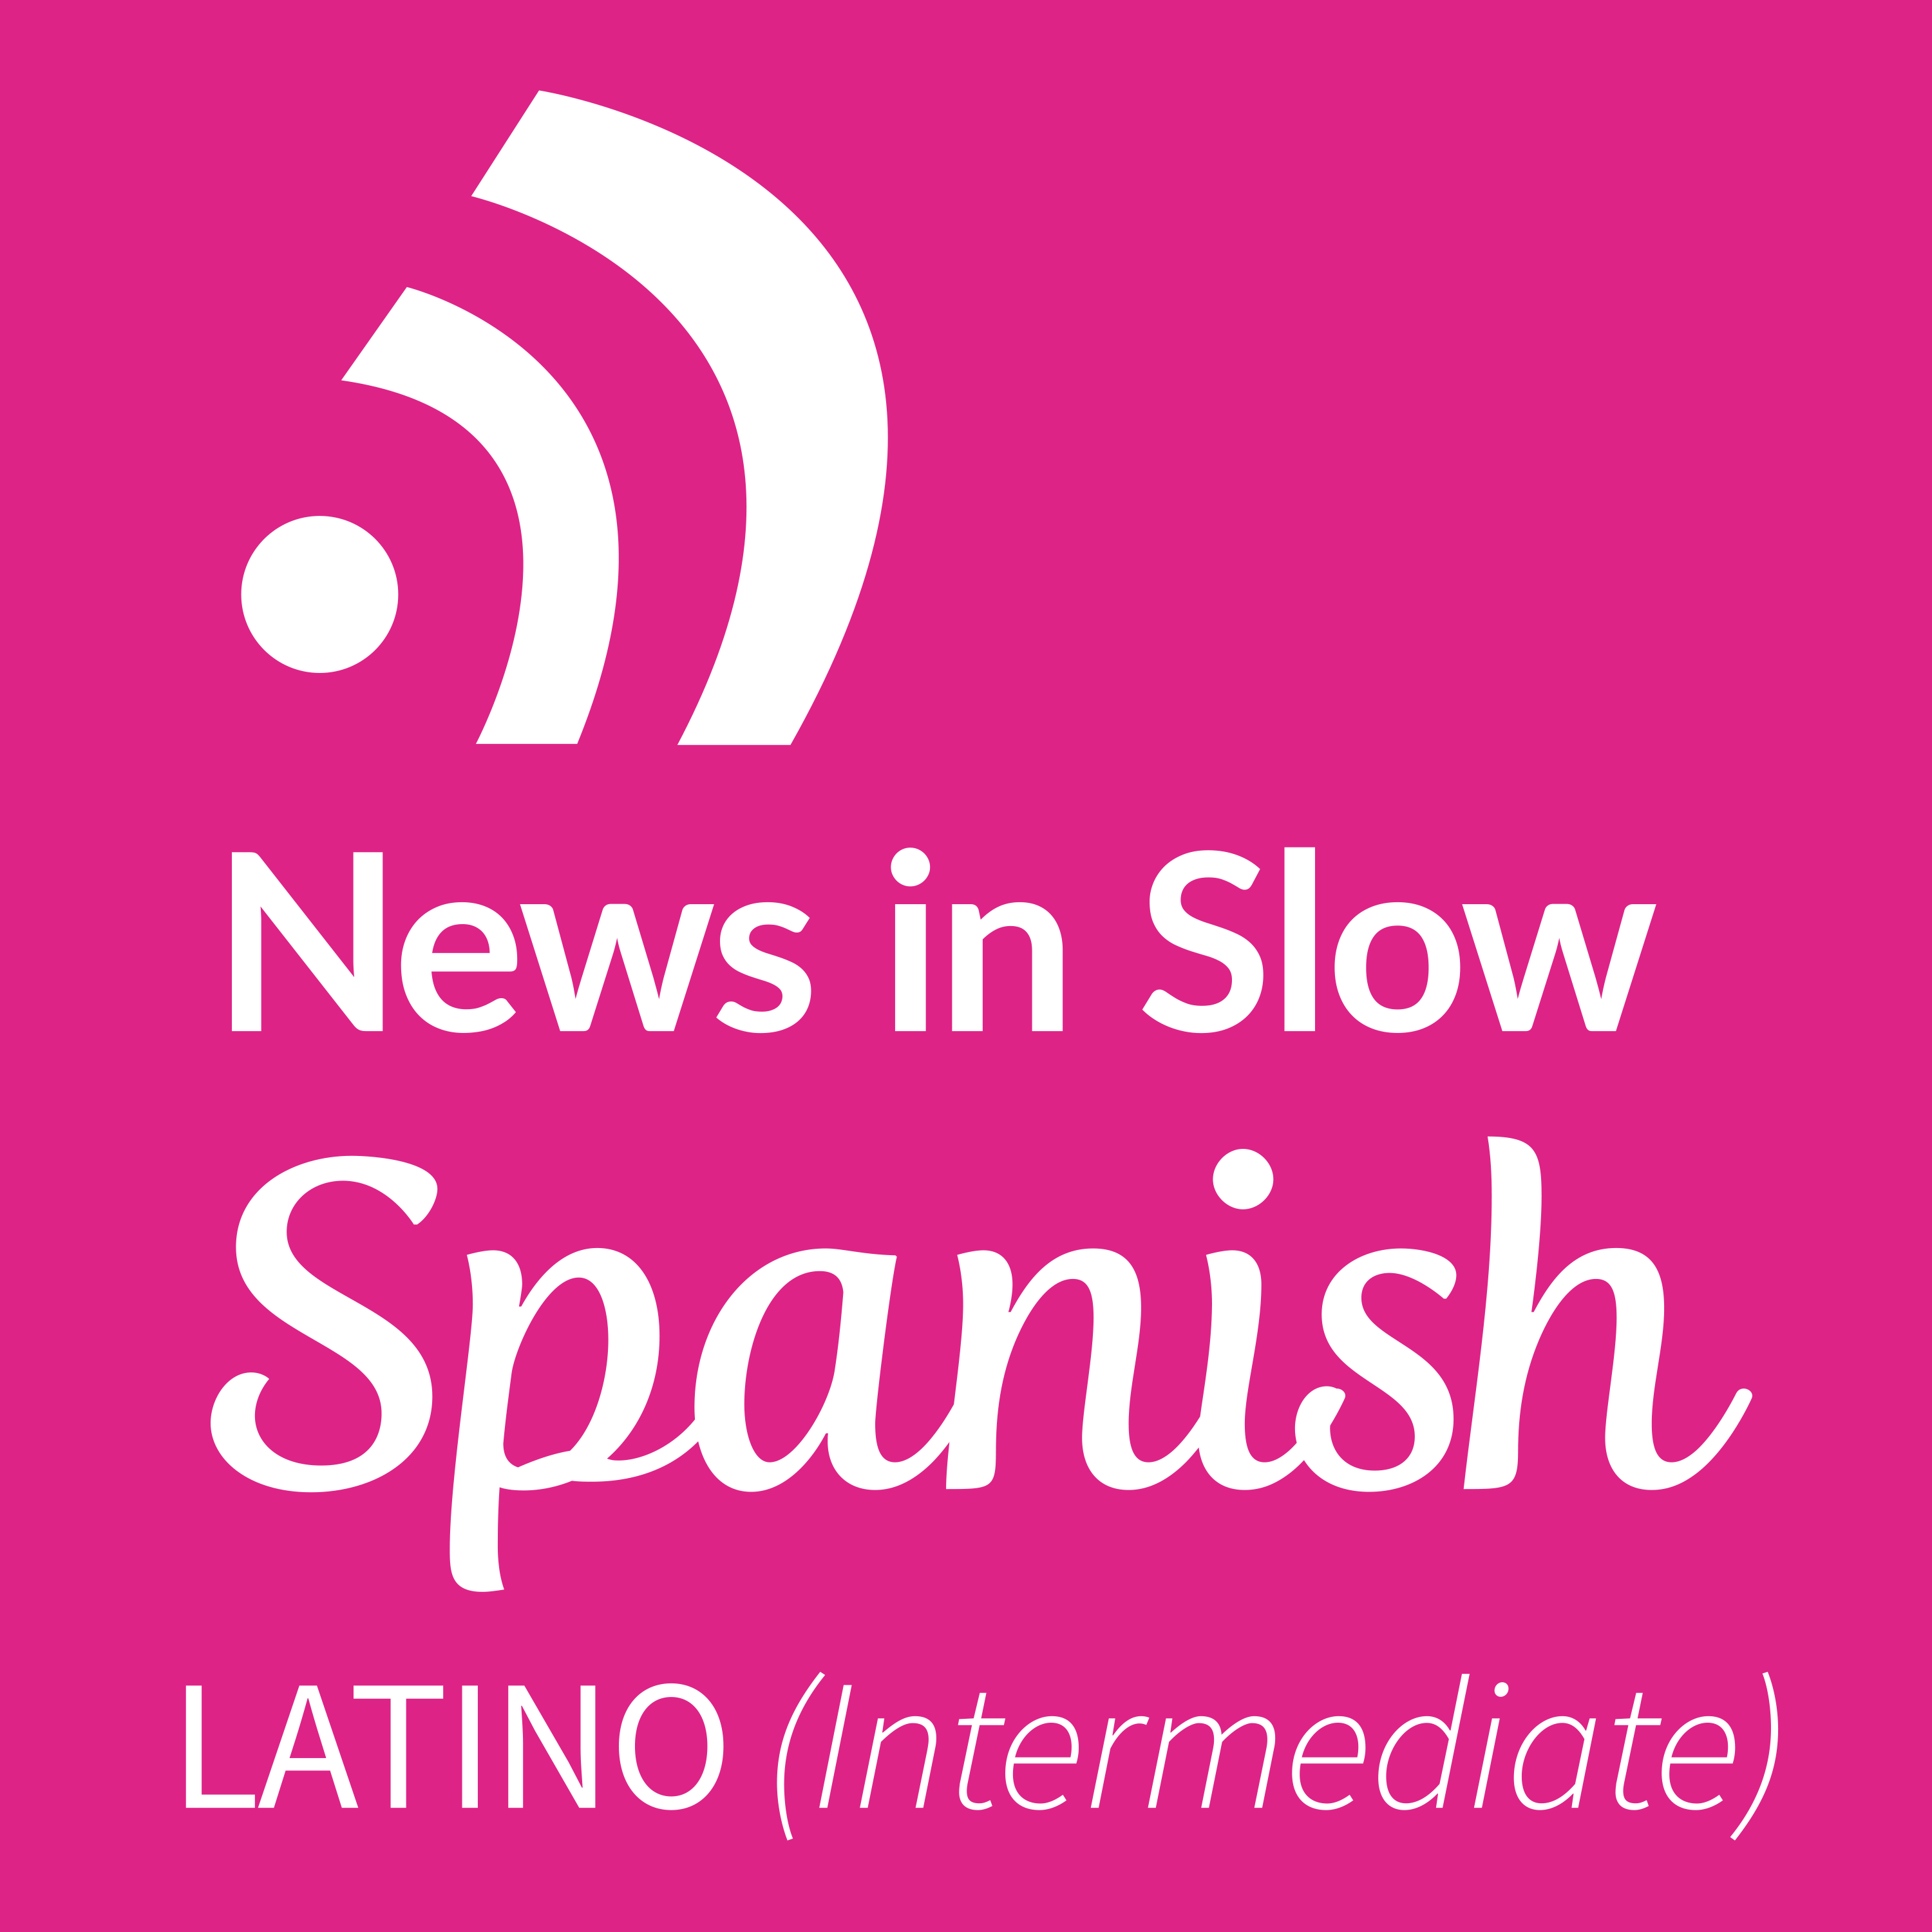 News in Slow Spanish Latino - # 189 - Spanish news, grammar and idiomatic expressions